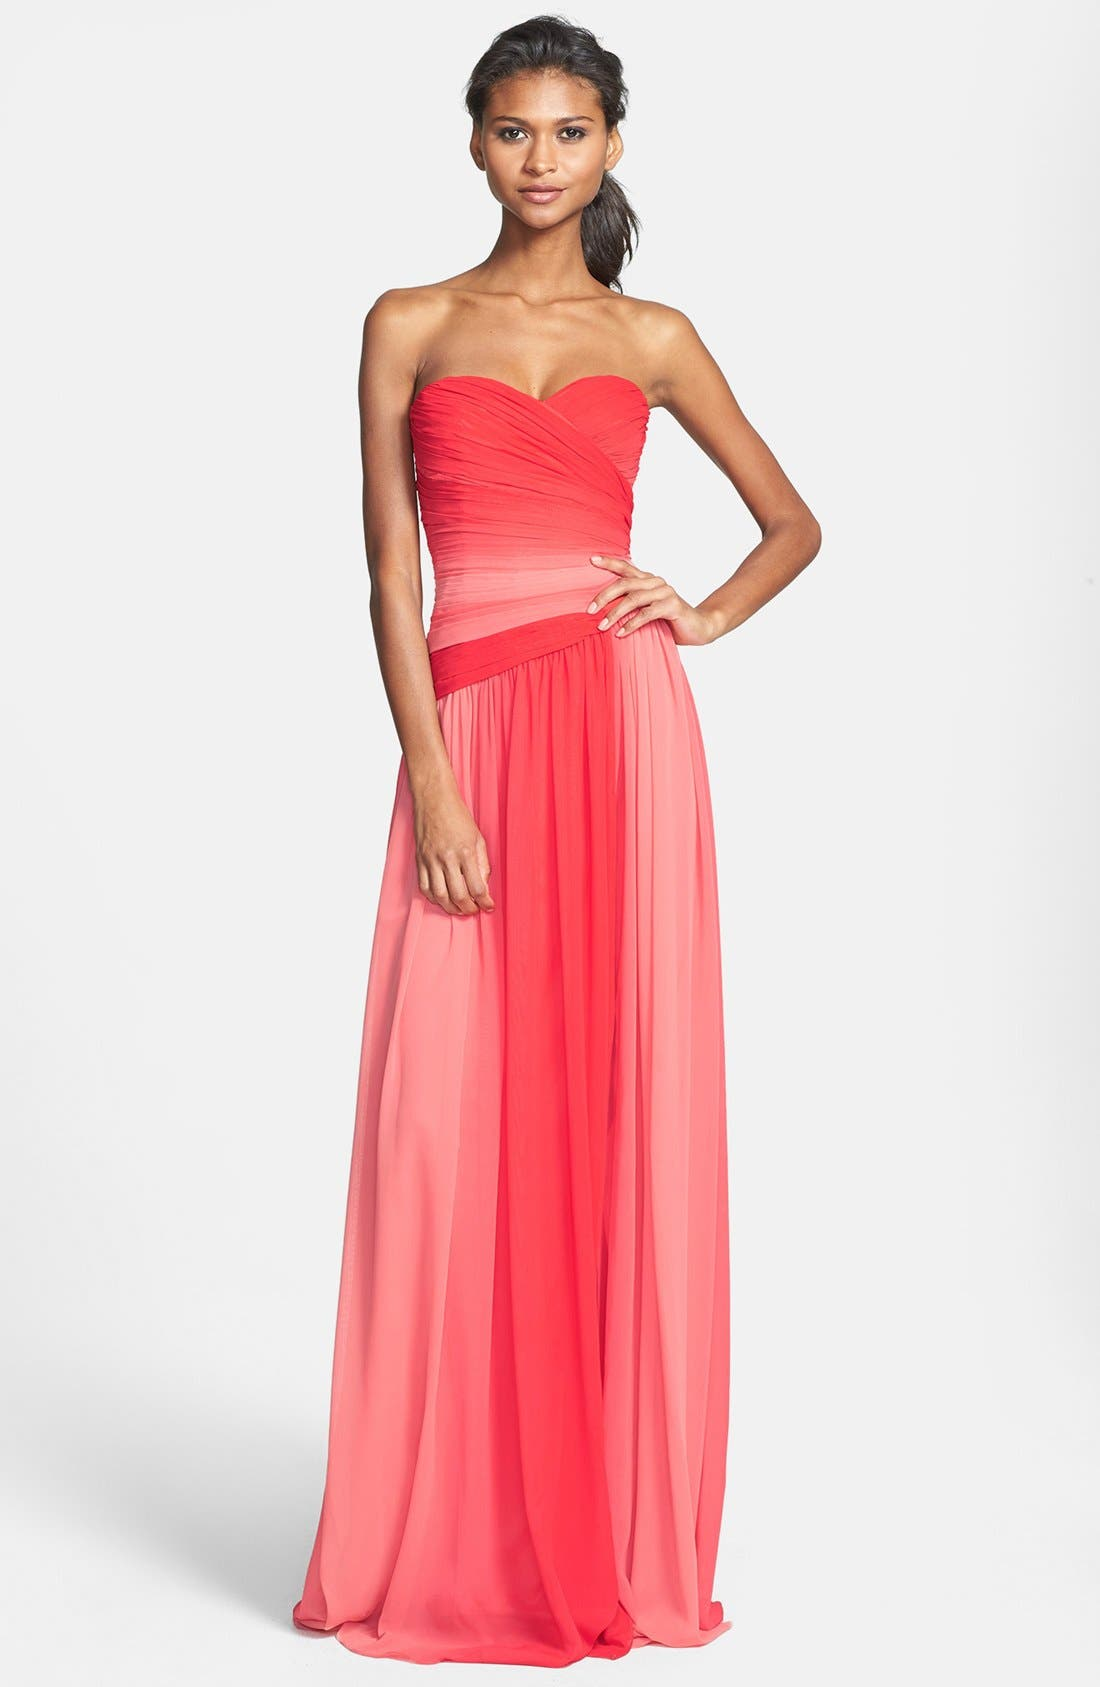 Alternate Image 1 Selected - ML Monique Lhuillier Bridesmaids Ombré Chiffon Gown